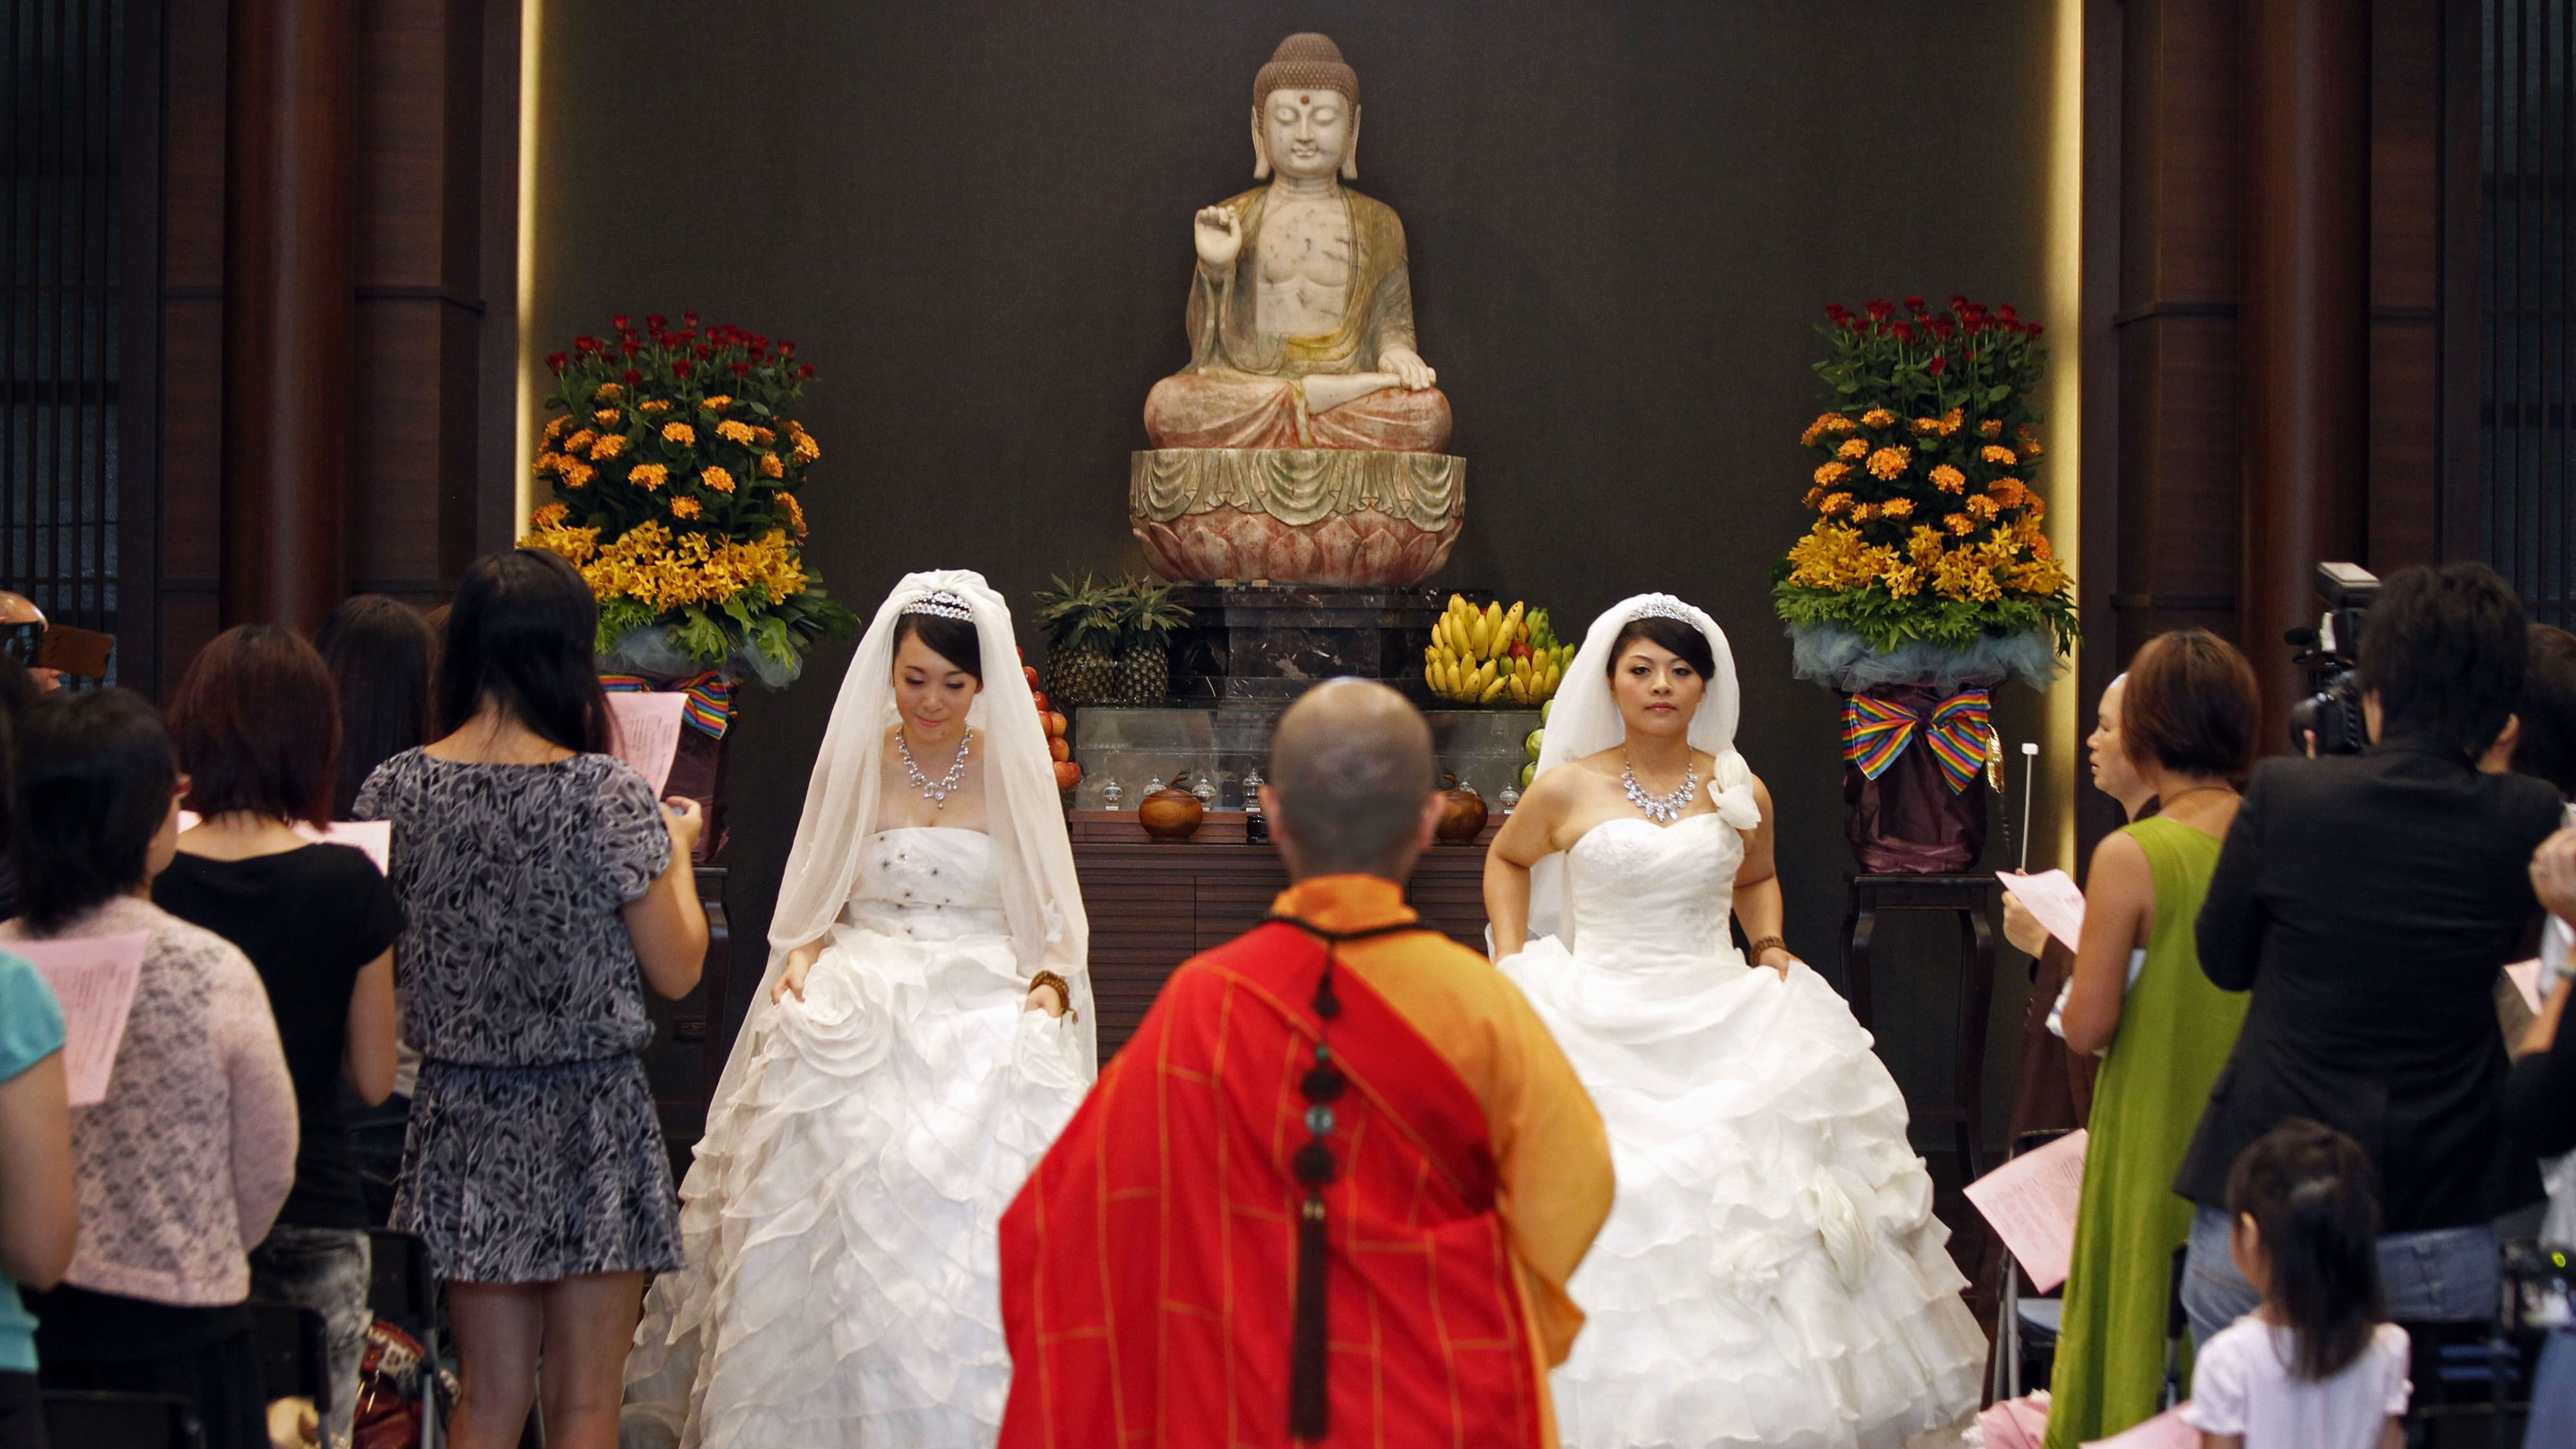 A same-sex couple are married by a nun in the first same-sex Buddhist ceremonial wedding in Taoyuan, Taiwan, Aug. 11, 2012.